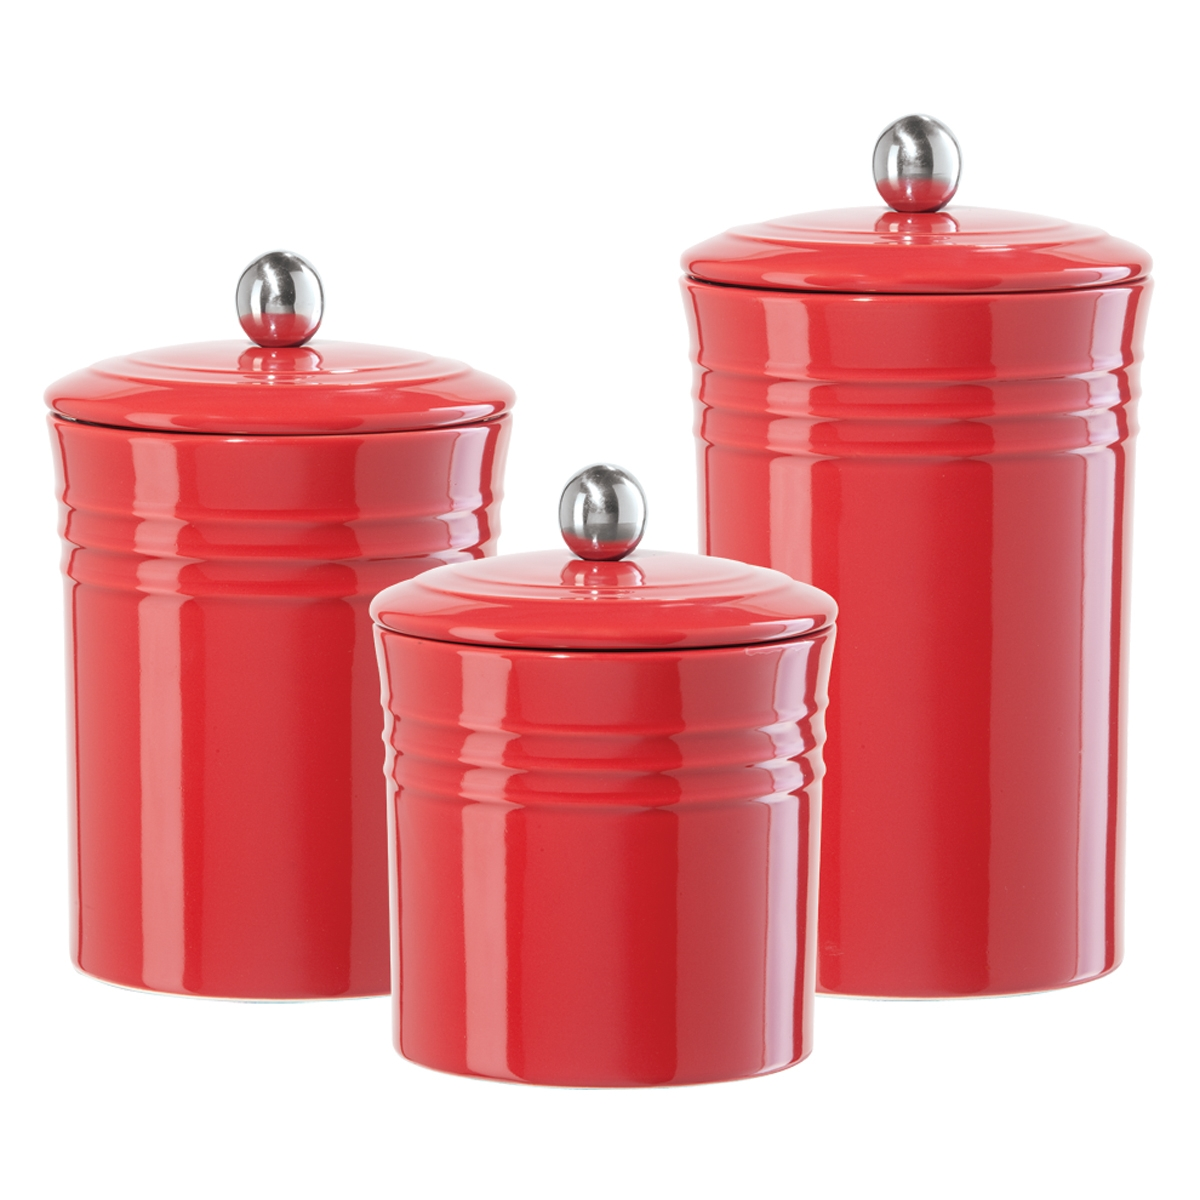 decorative kitchen canisters sets bench with storage red black